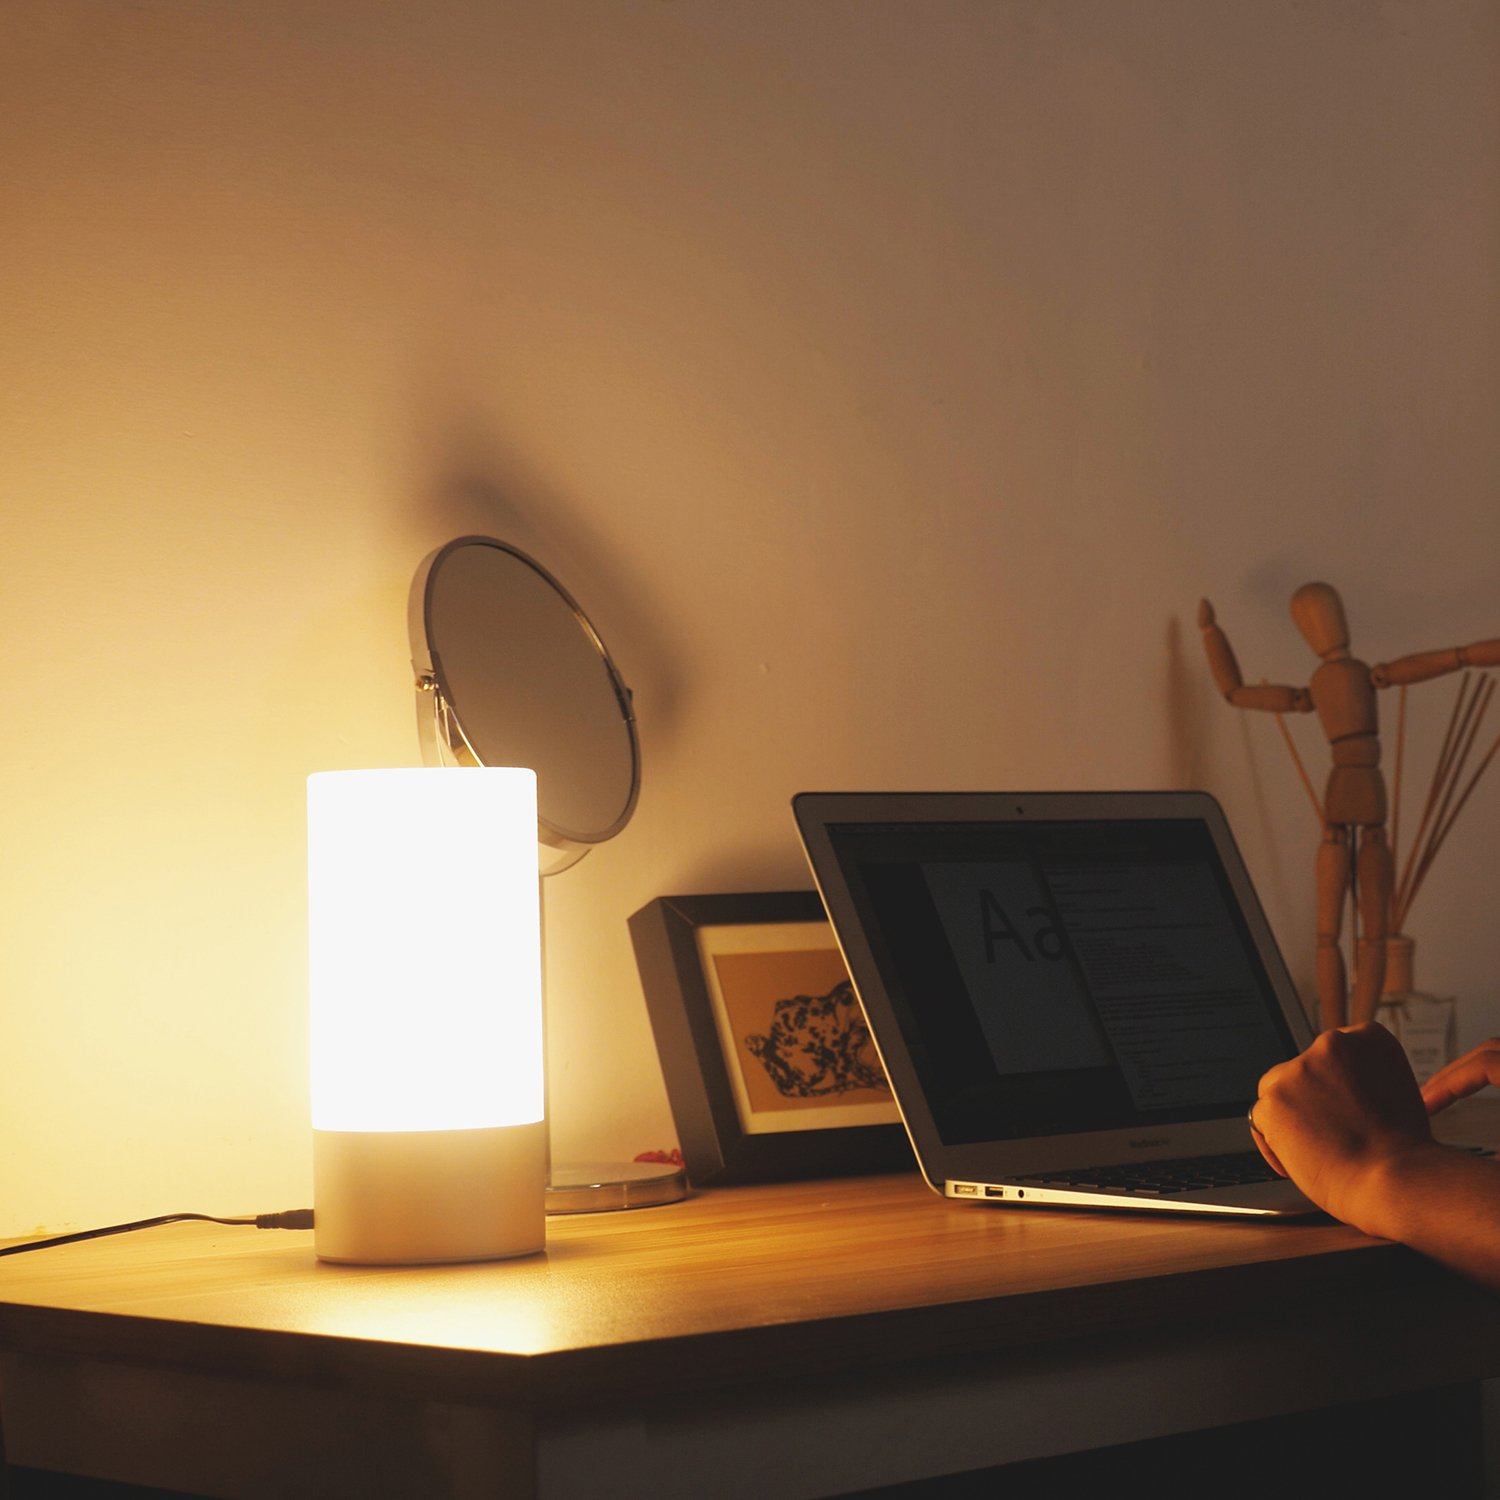 AUKEY Table Lamp, Touch Sensor Bedside Lamps + Dimmable Warm White Light & Color Changing RGB for Bedrooms by AUKEY (Image #5)